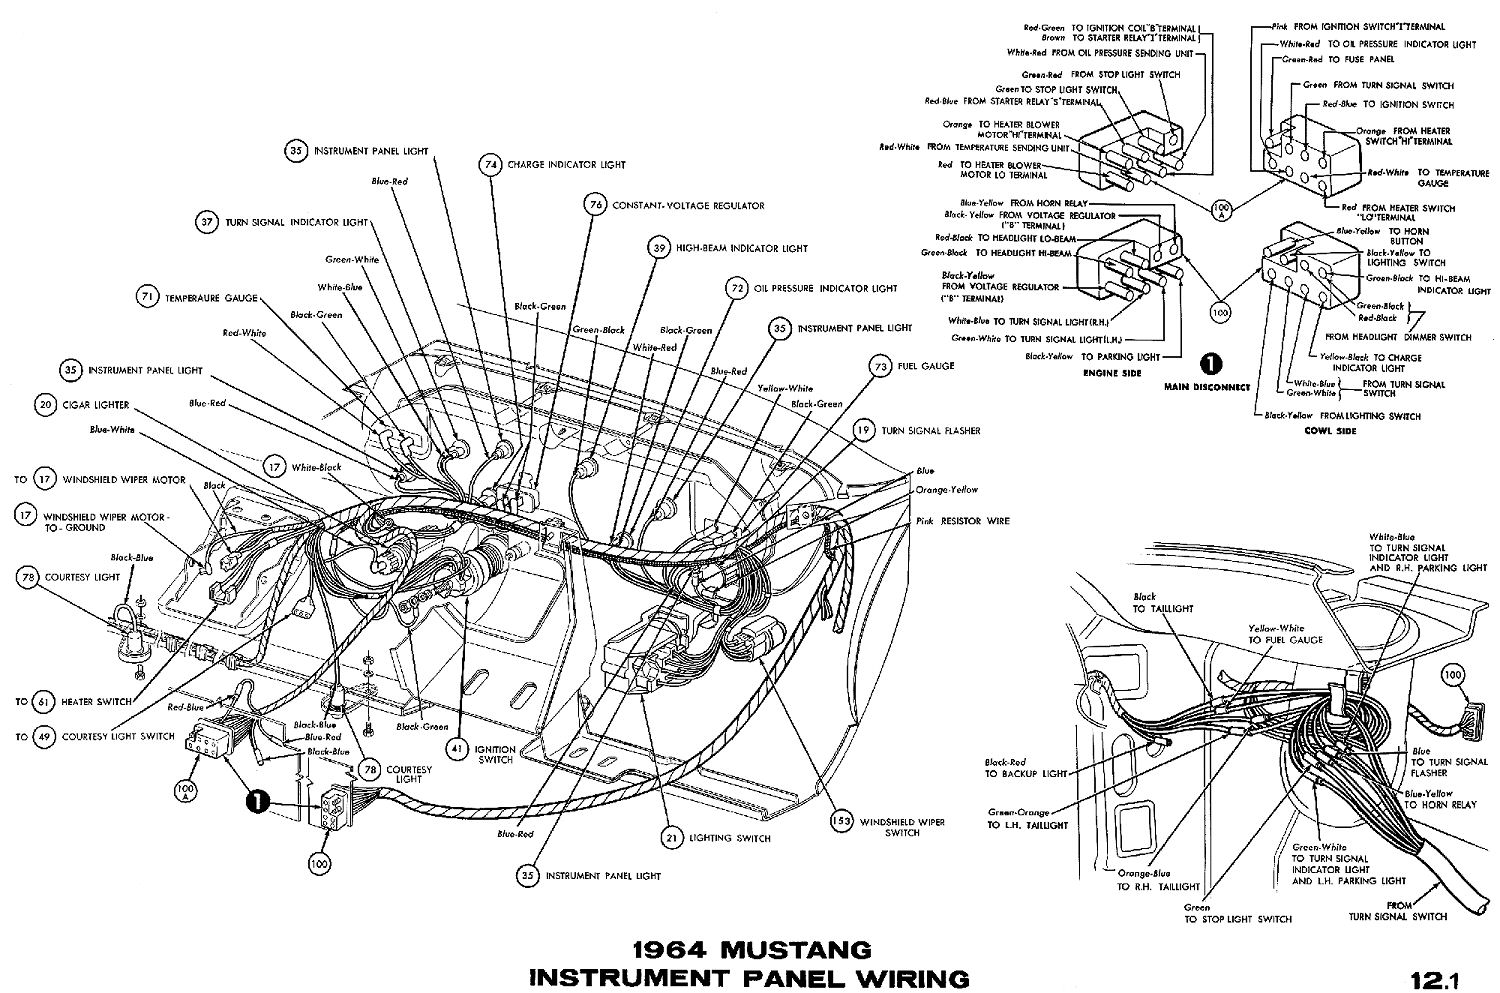 1967 Malibu Instrument Panel Wiring Diagram Free Plc Mustang Source Rh 18 10 1 Logistra Net De